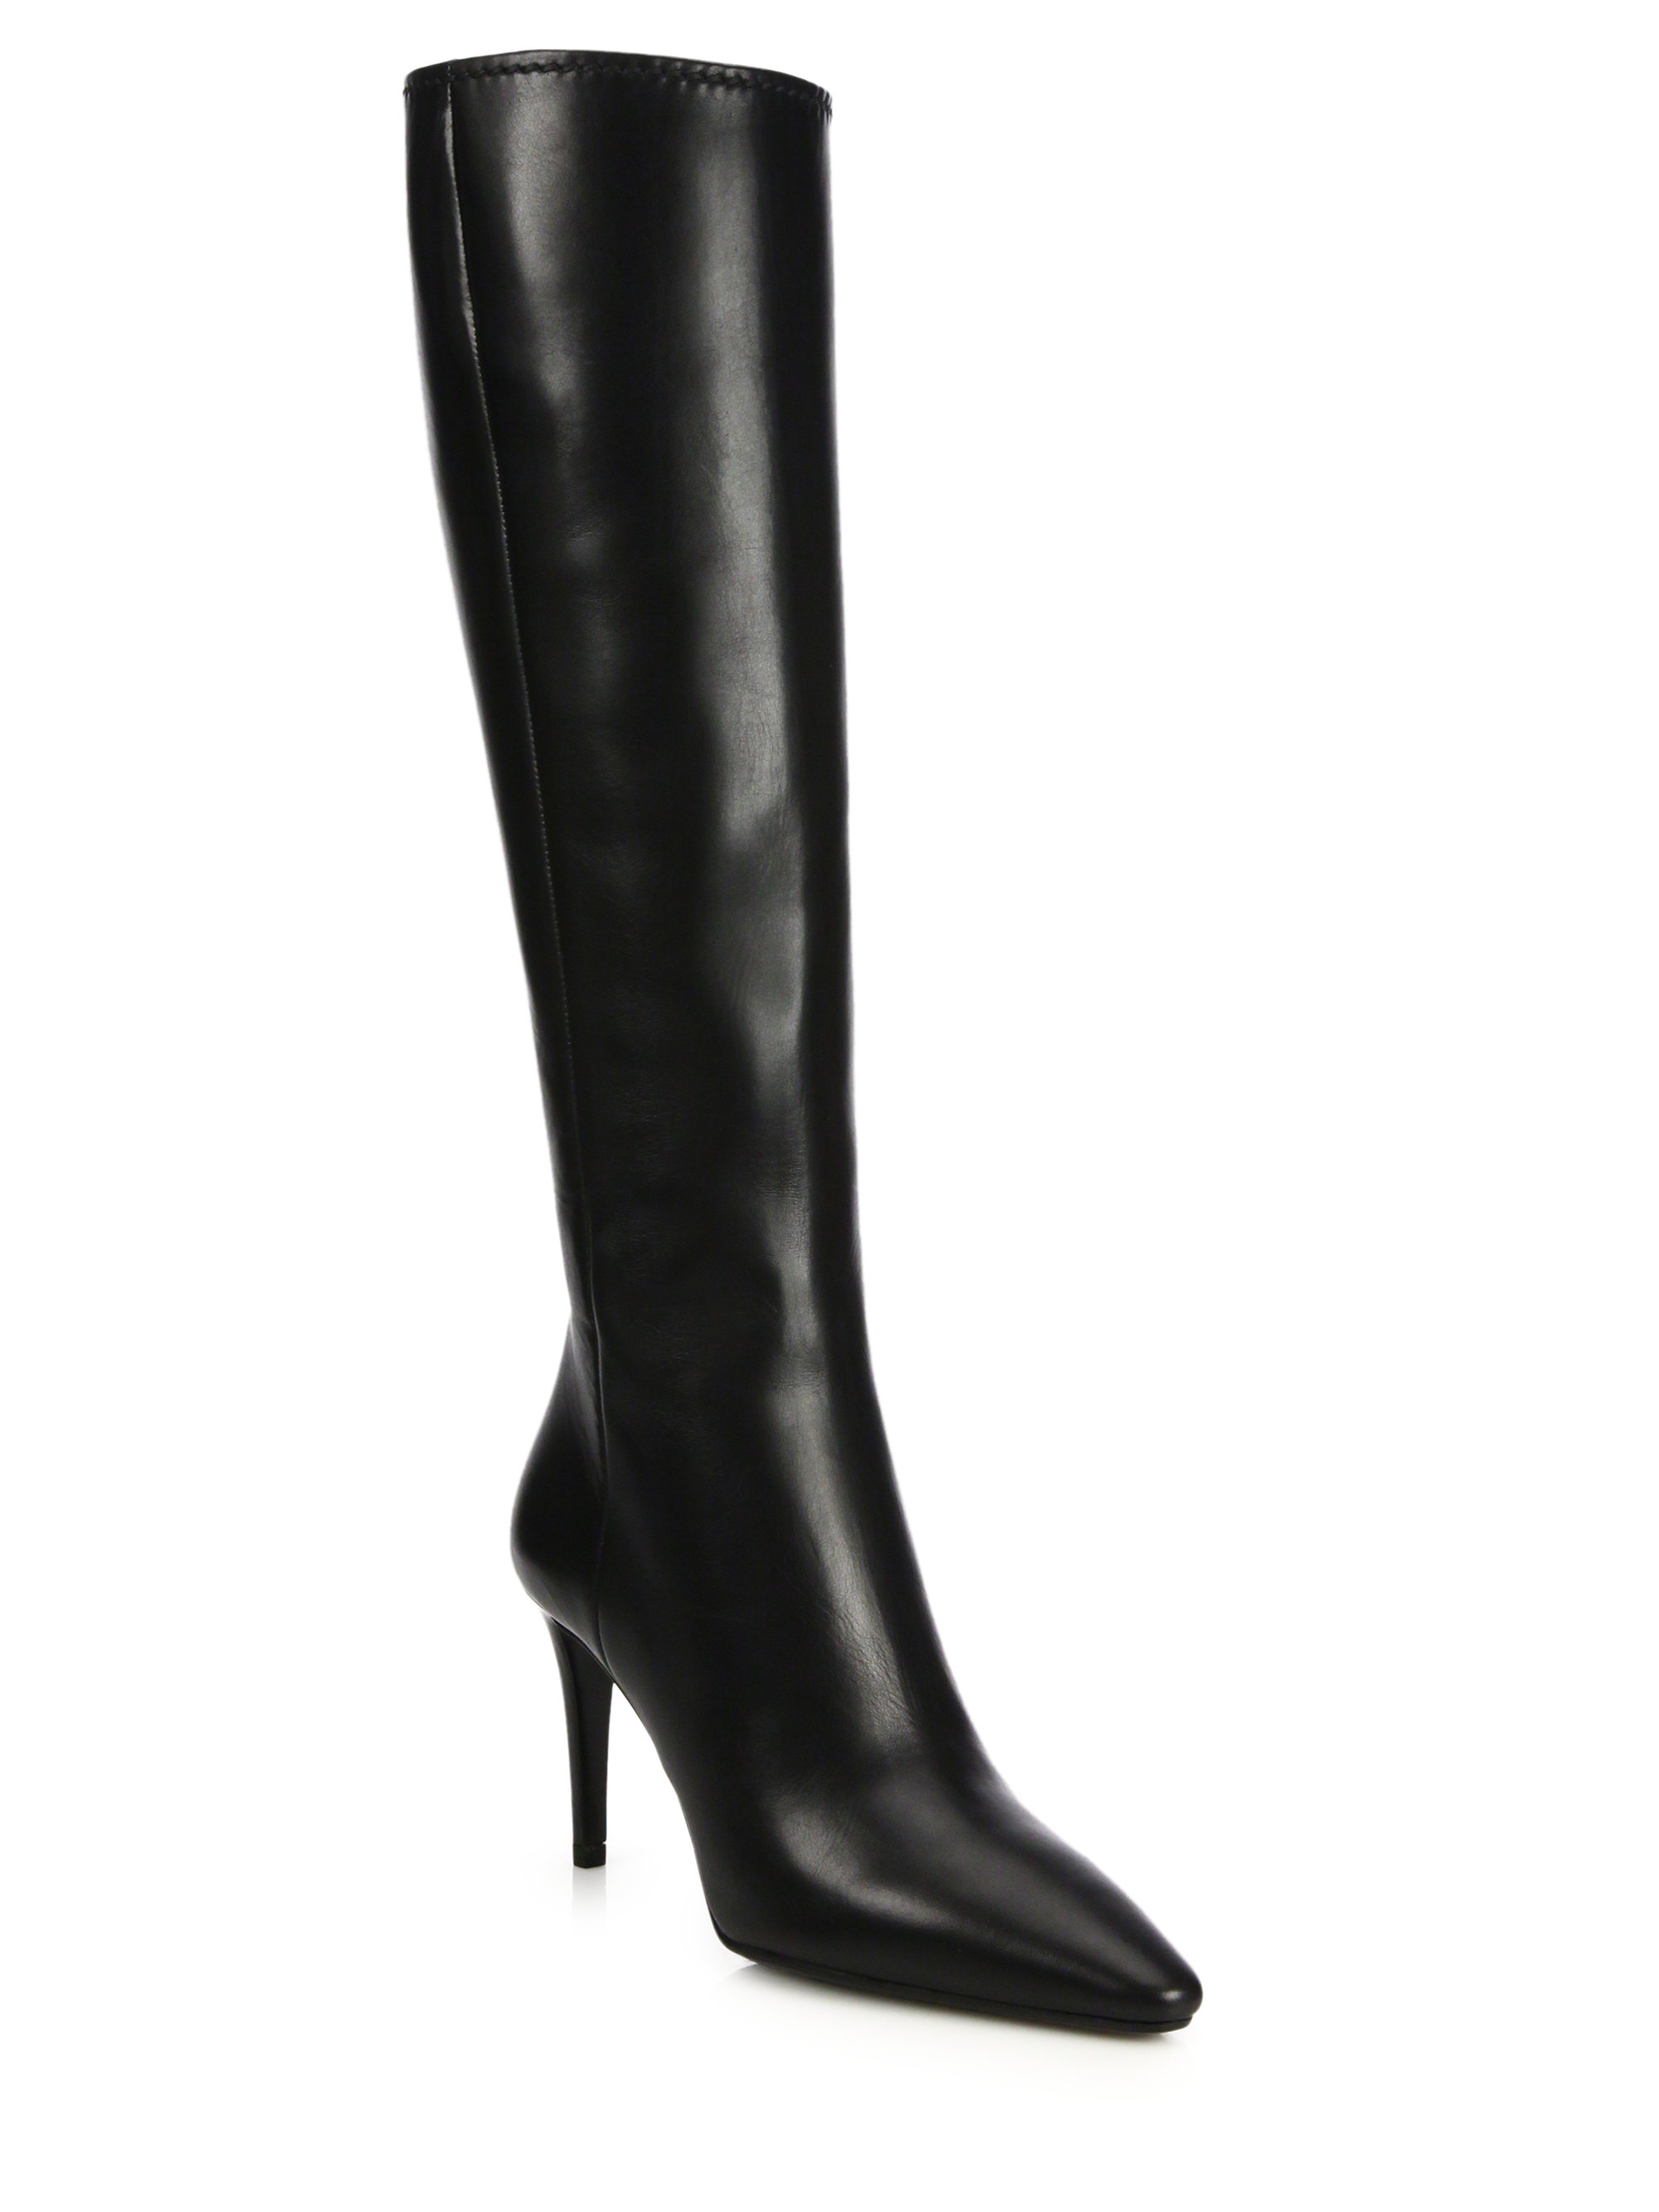 Lyst - Prada Leather Knee-High Point-Toe Boots In Black-4682